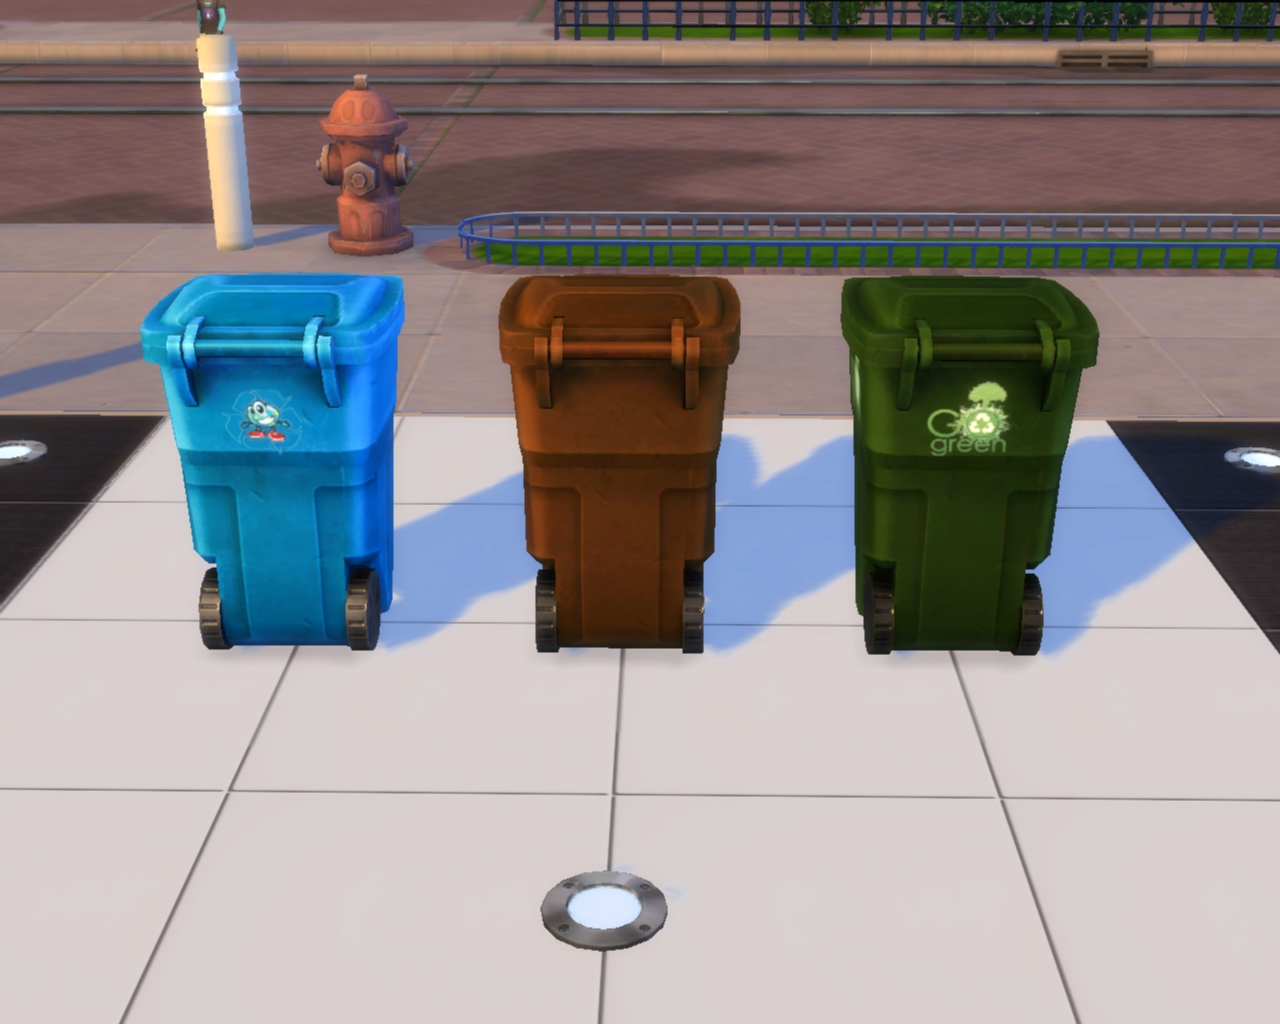 Go Green Recycle Bins by mojo007